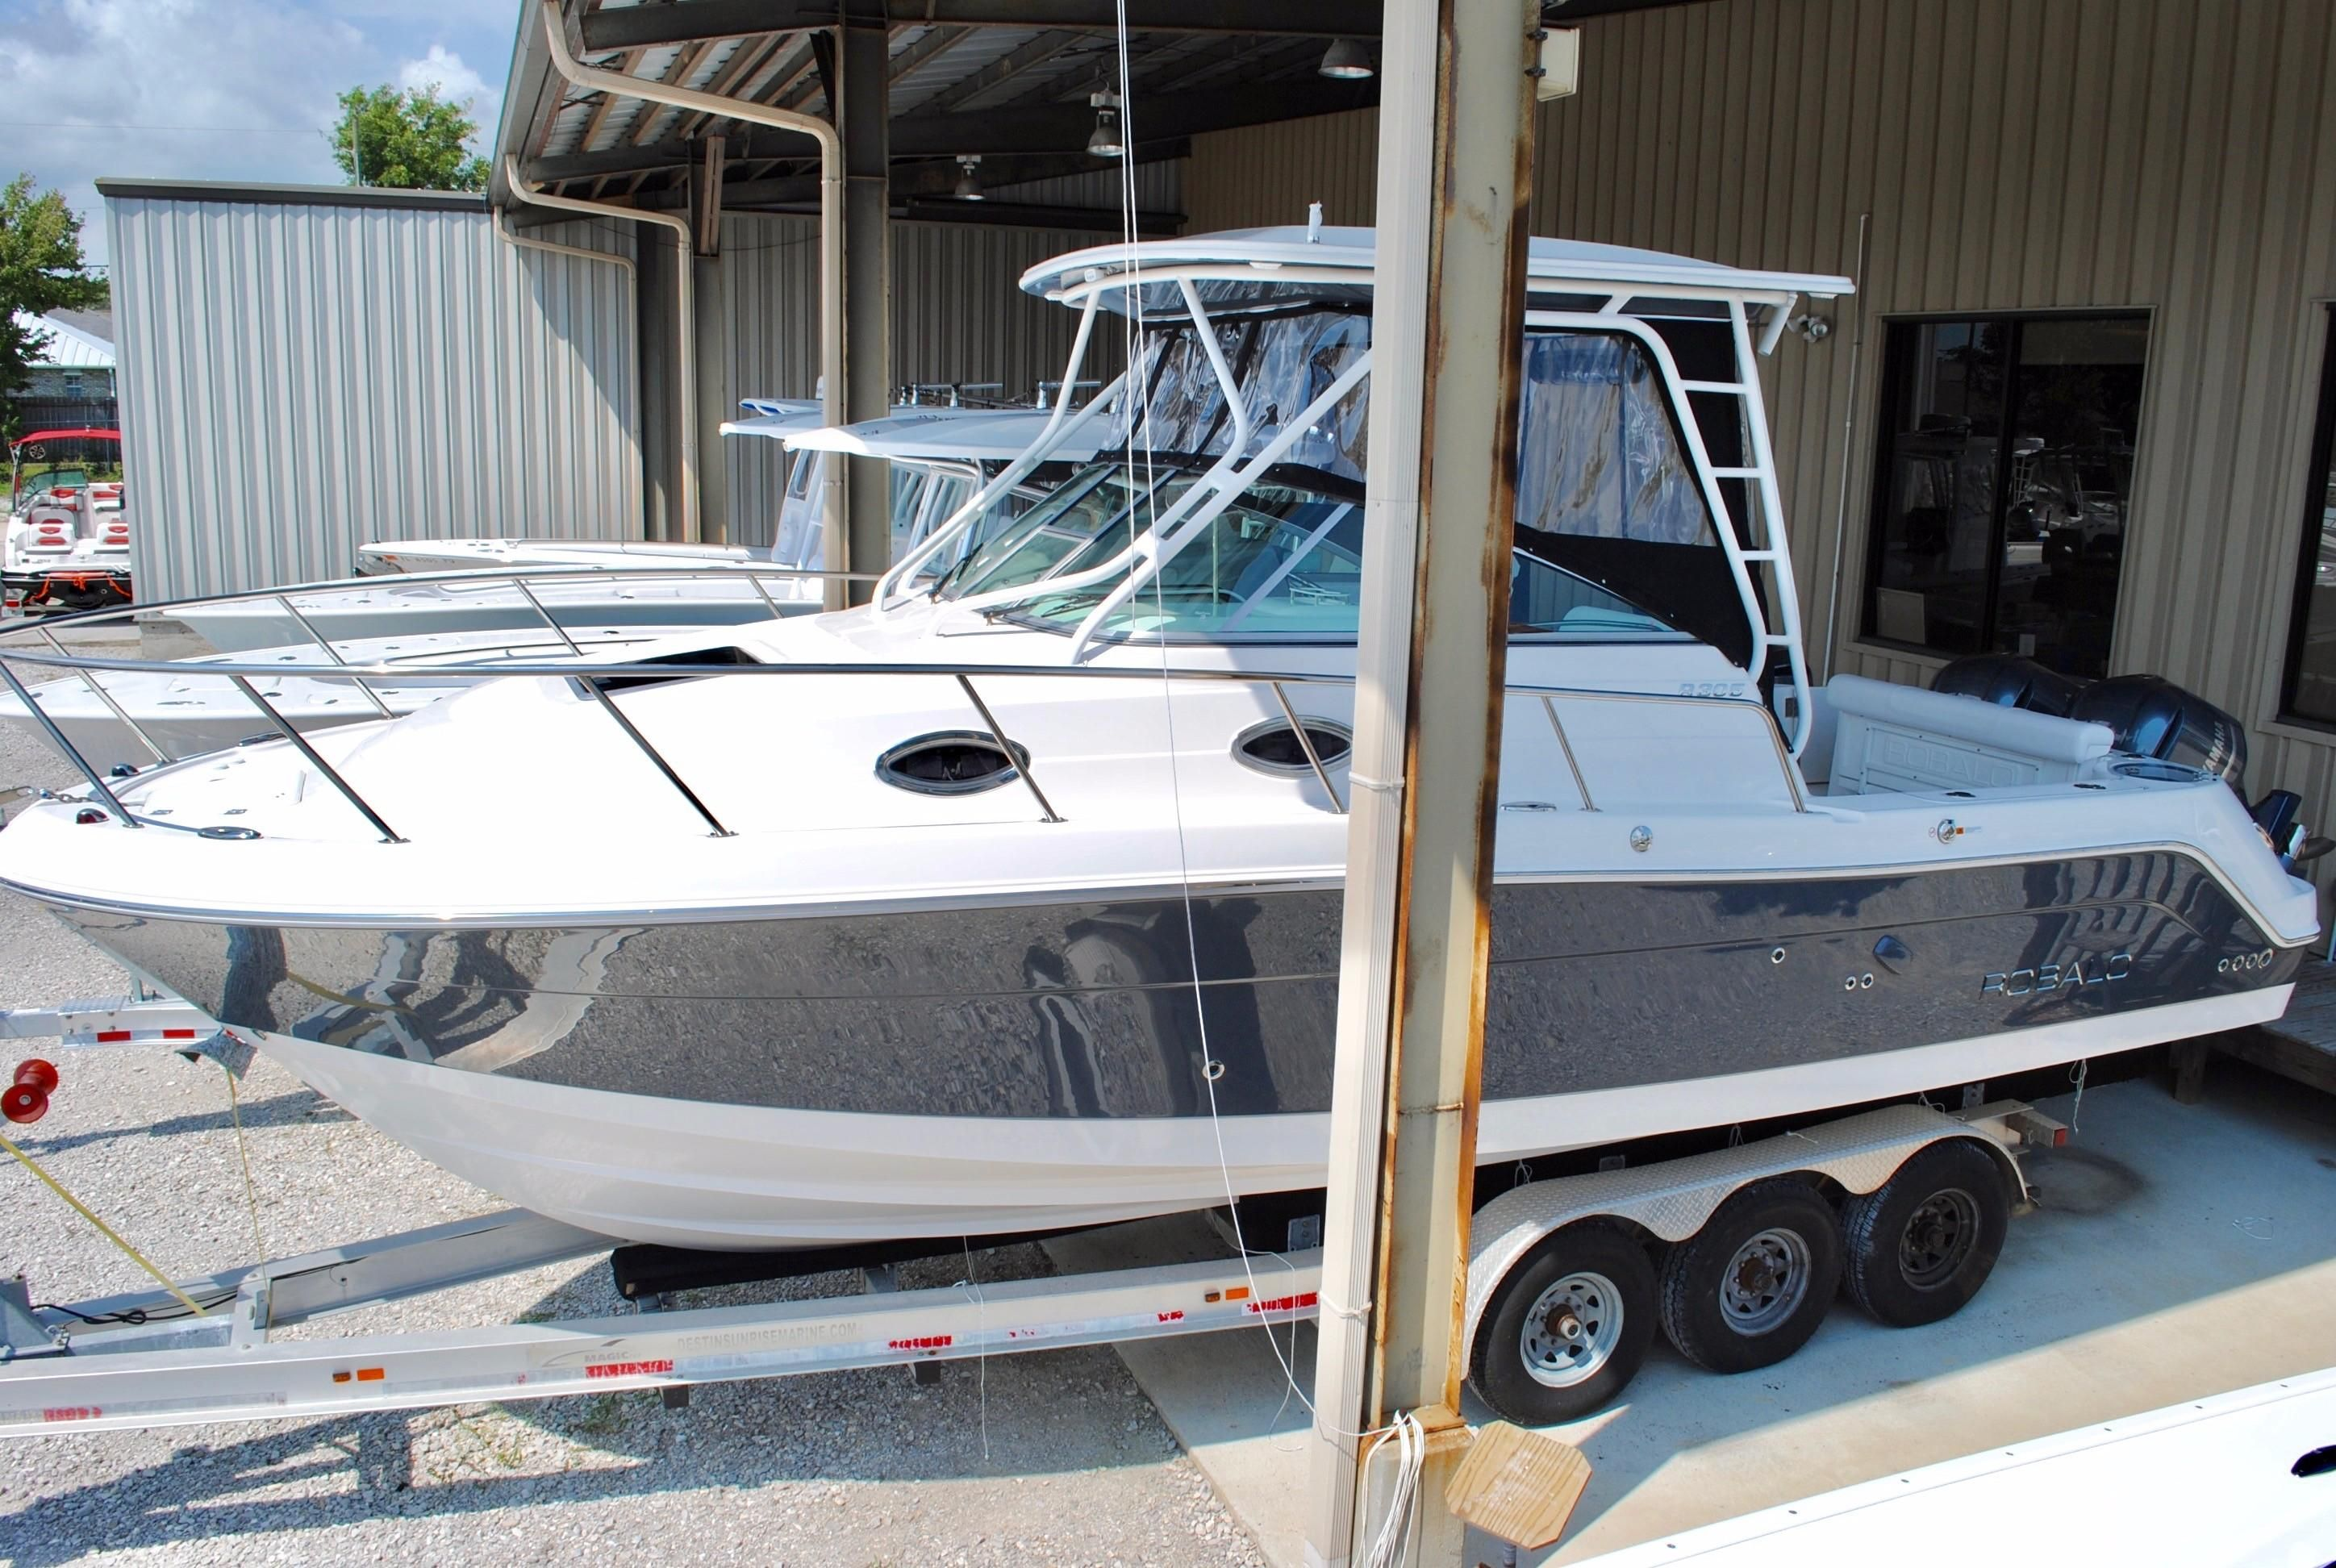 2018 robalo 305 walkaround cruiser power boat for sale for Robalo fish in english